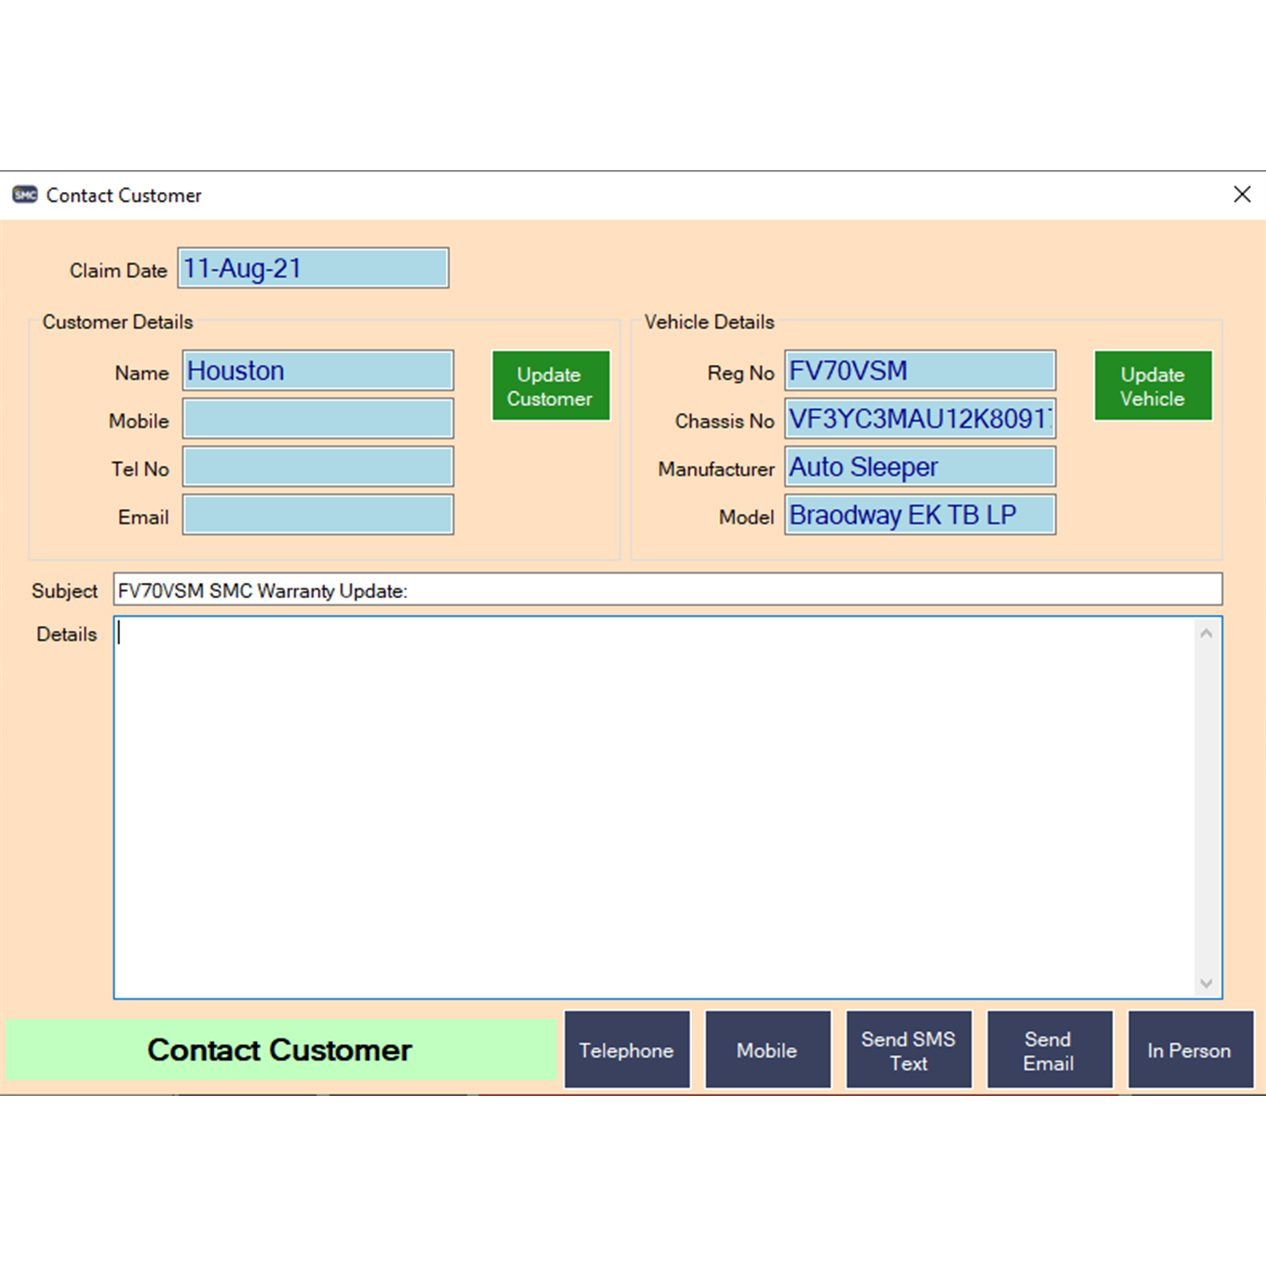 Customer Contact System